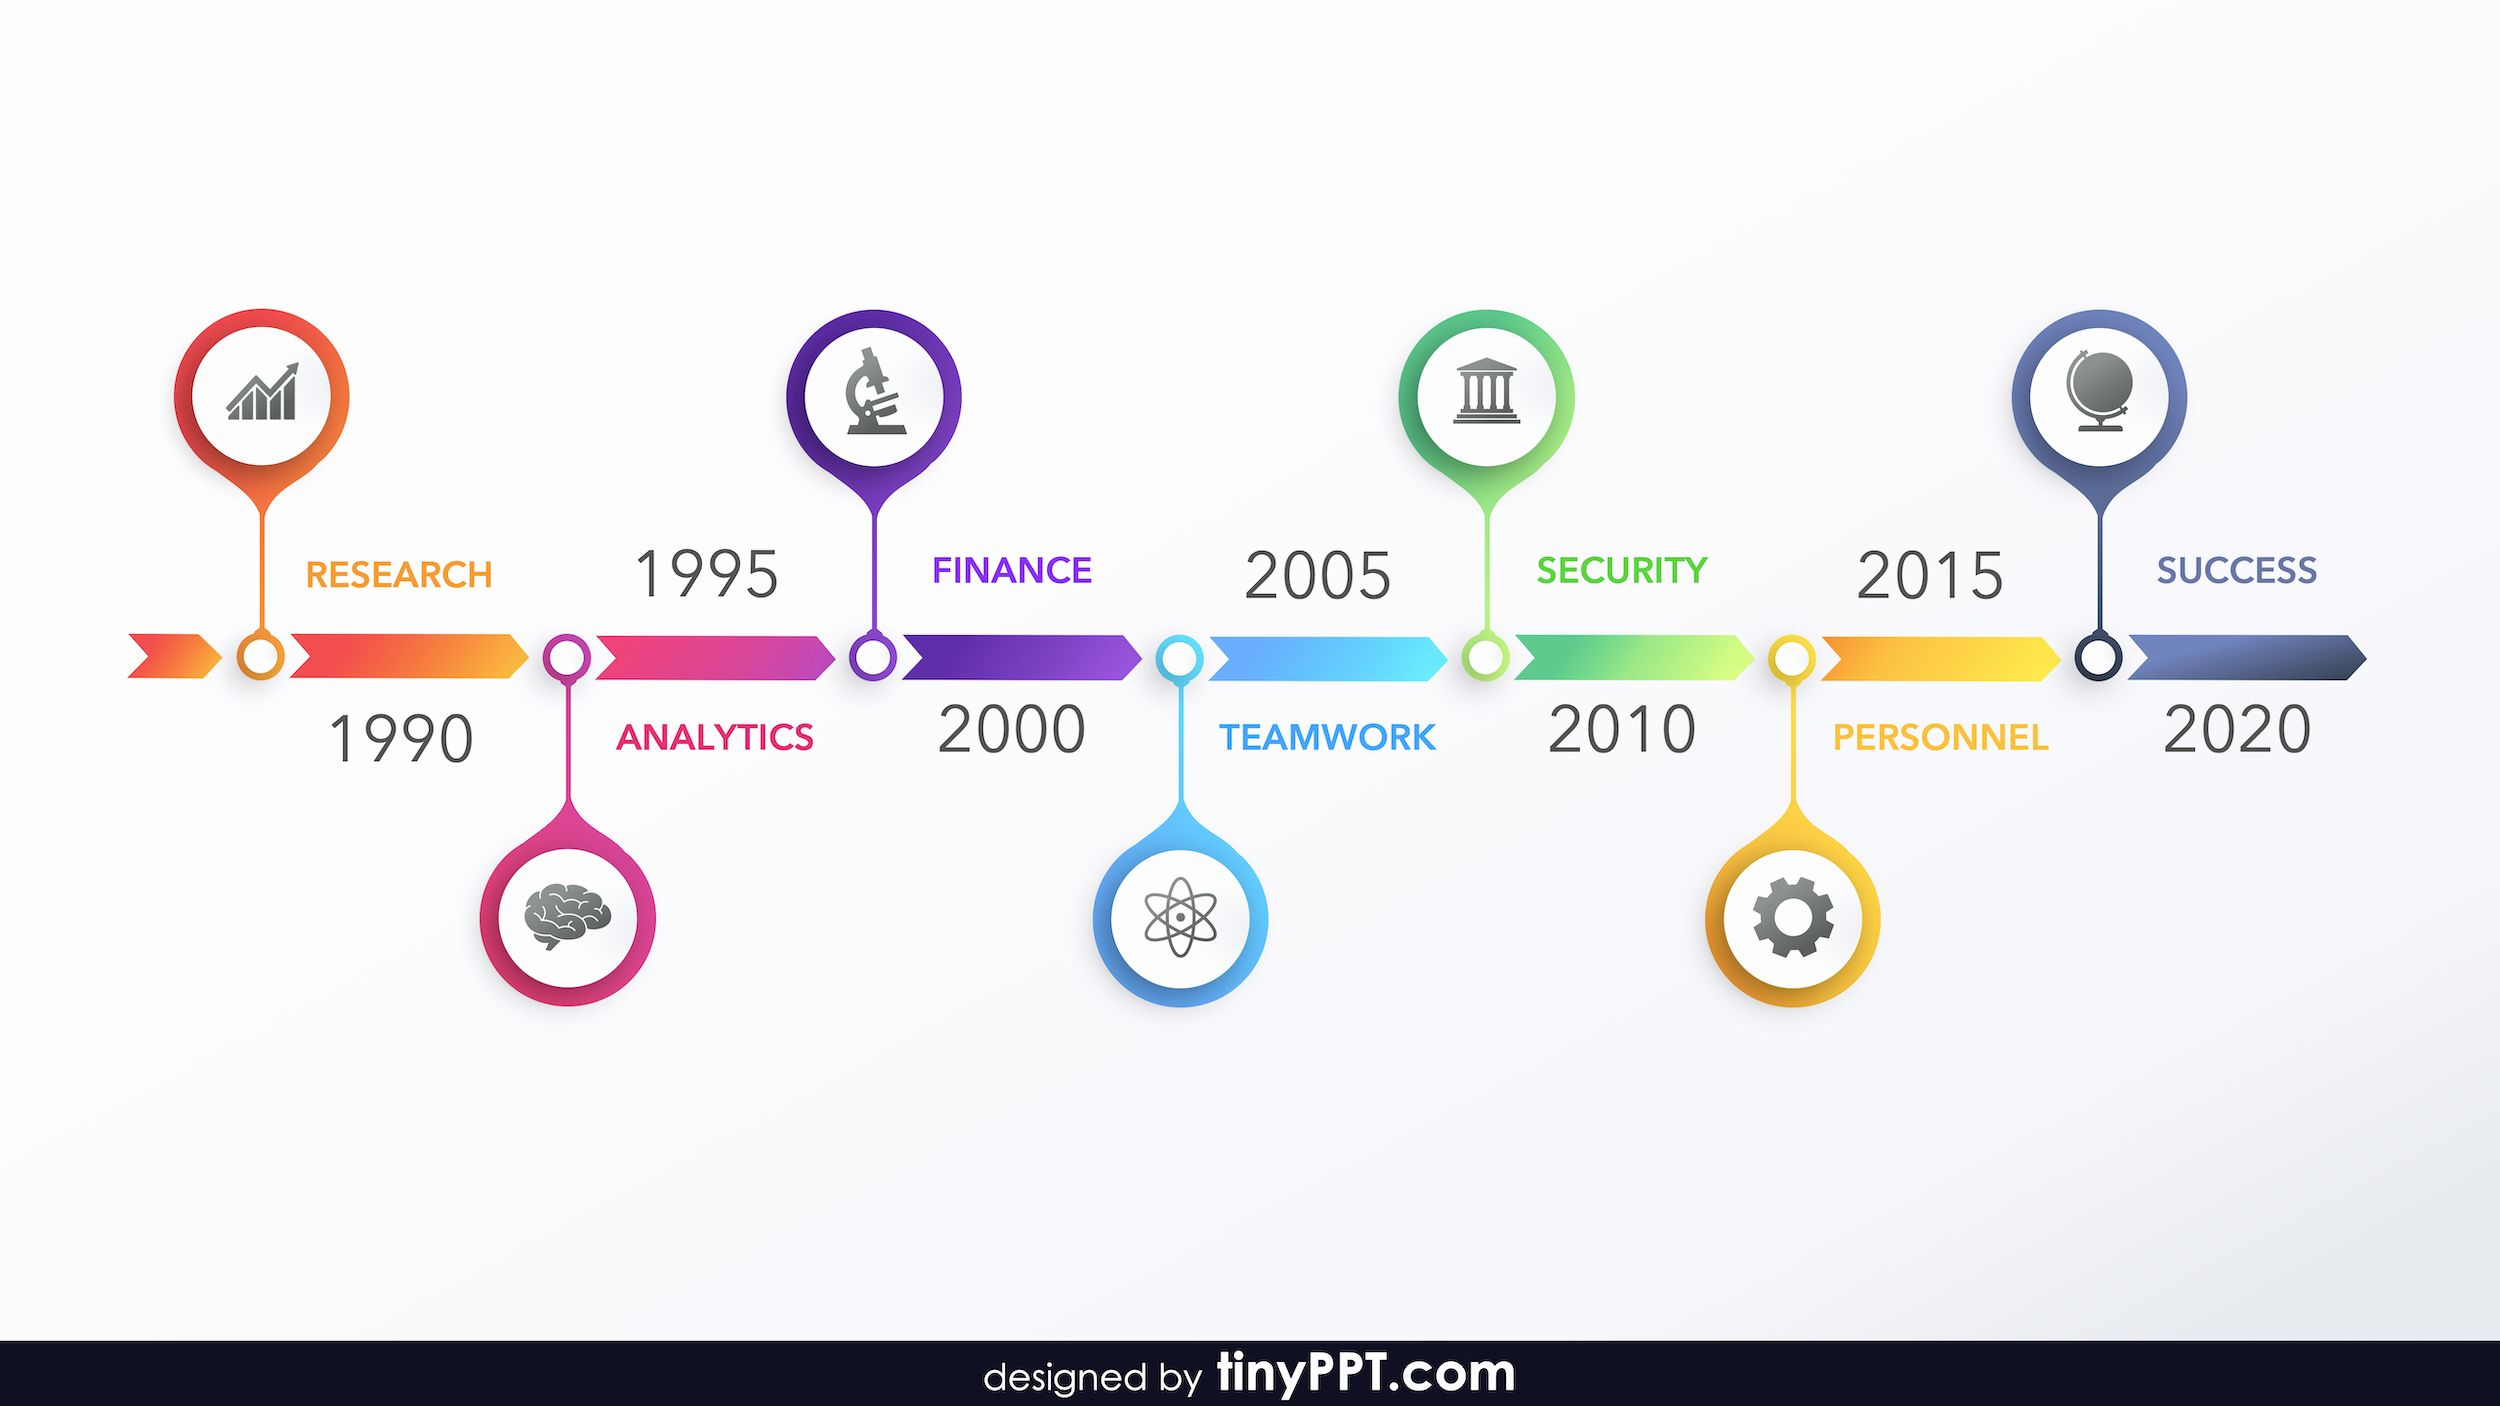 Powerpoint Roadmap Template Free Download In 2020 Infographic